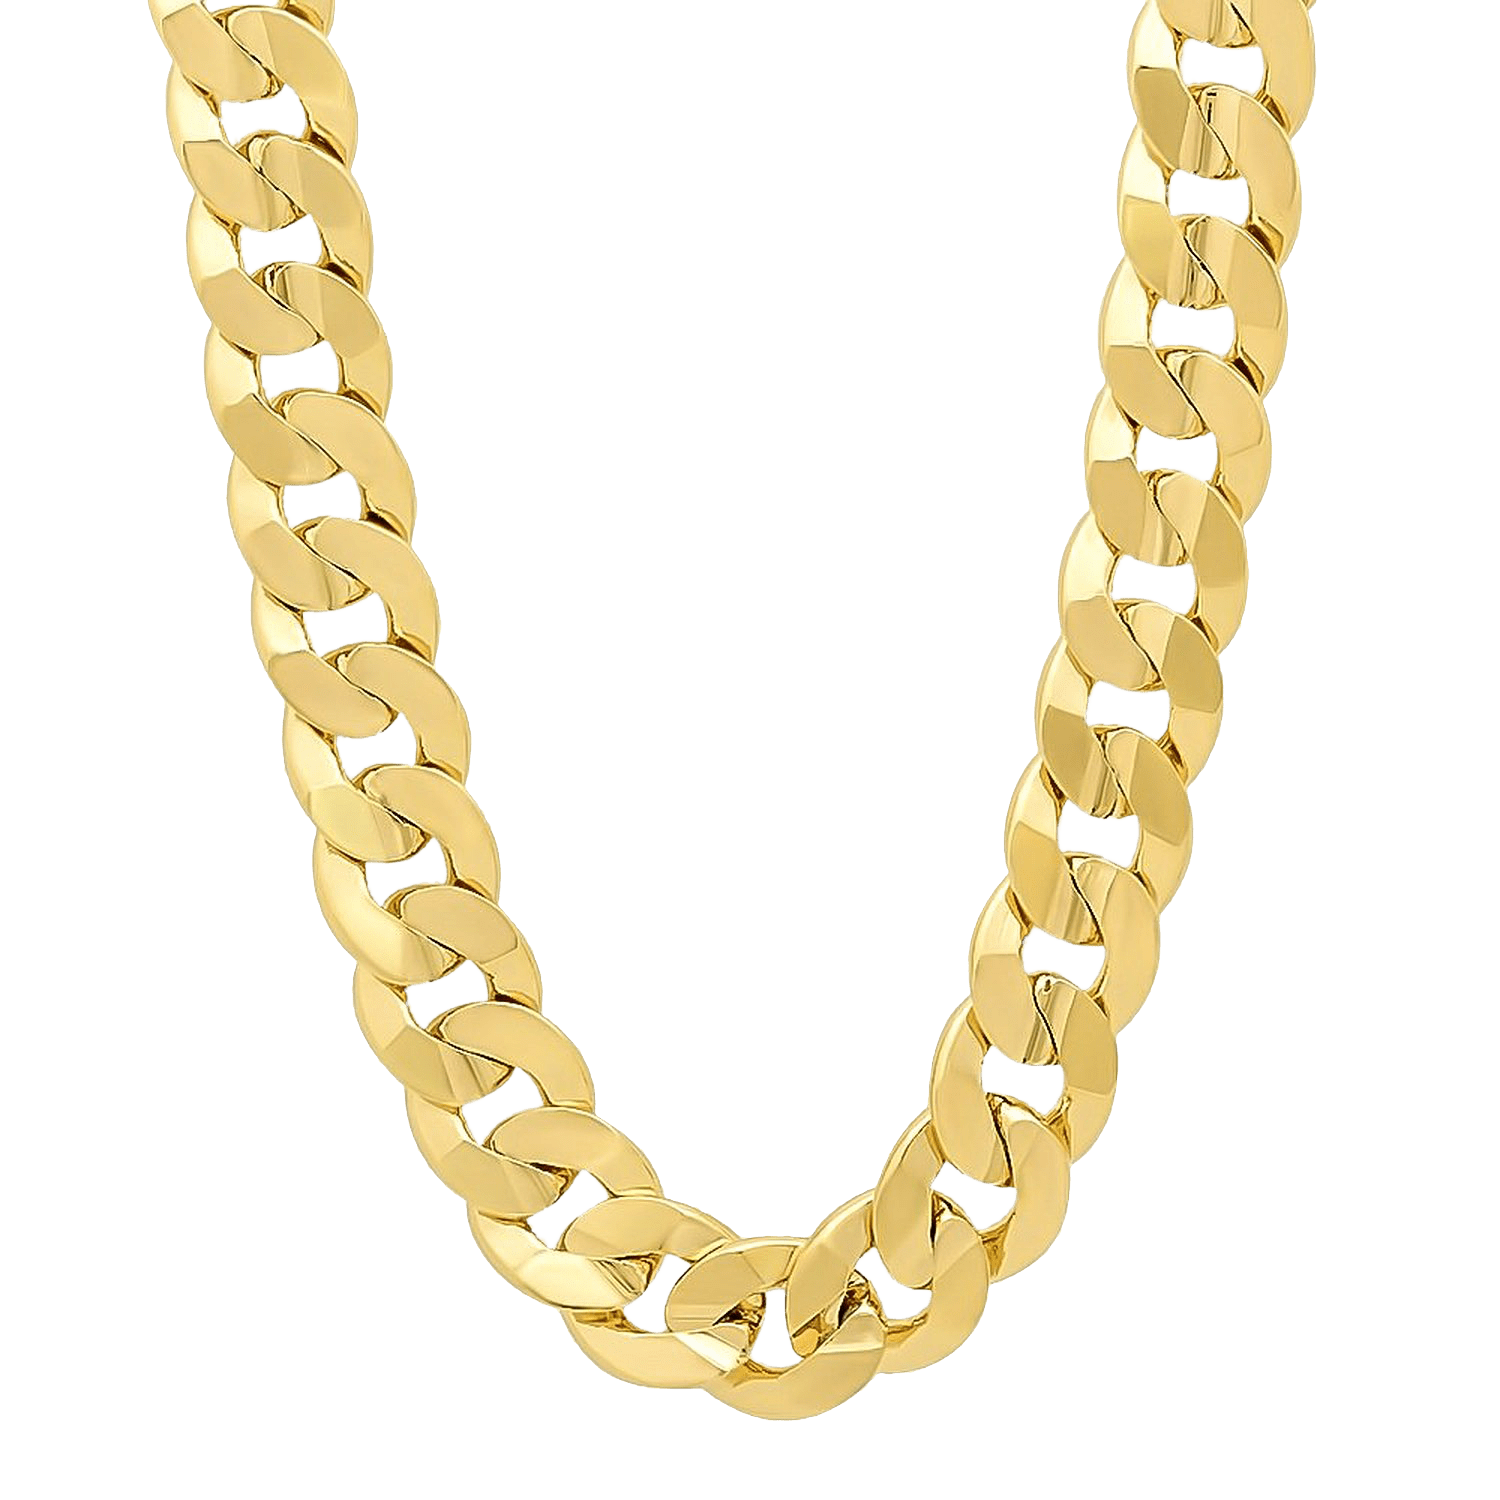 thug life heavy gold chain transparent #8291